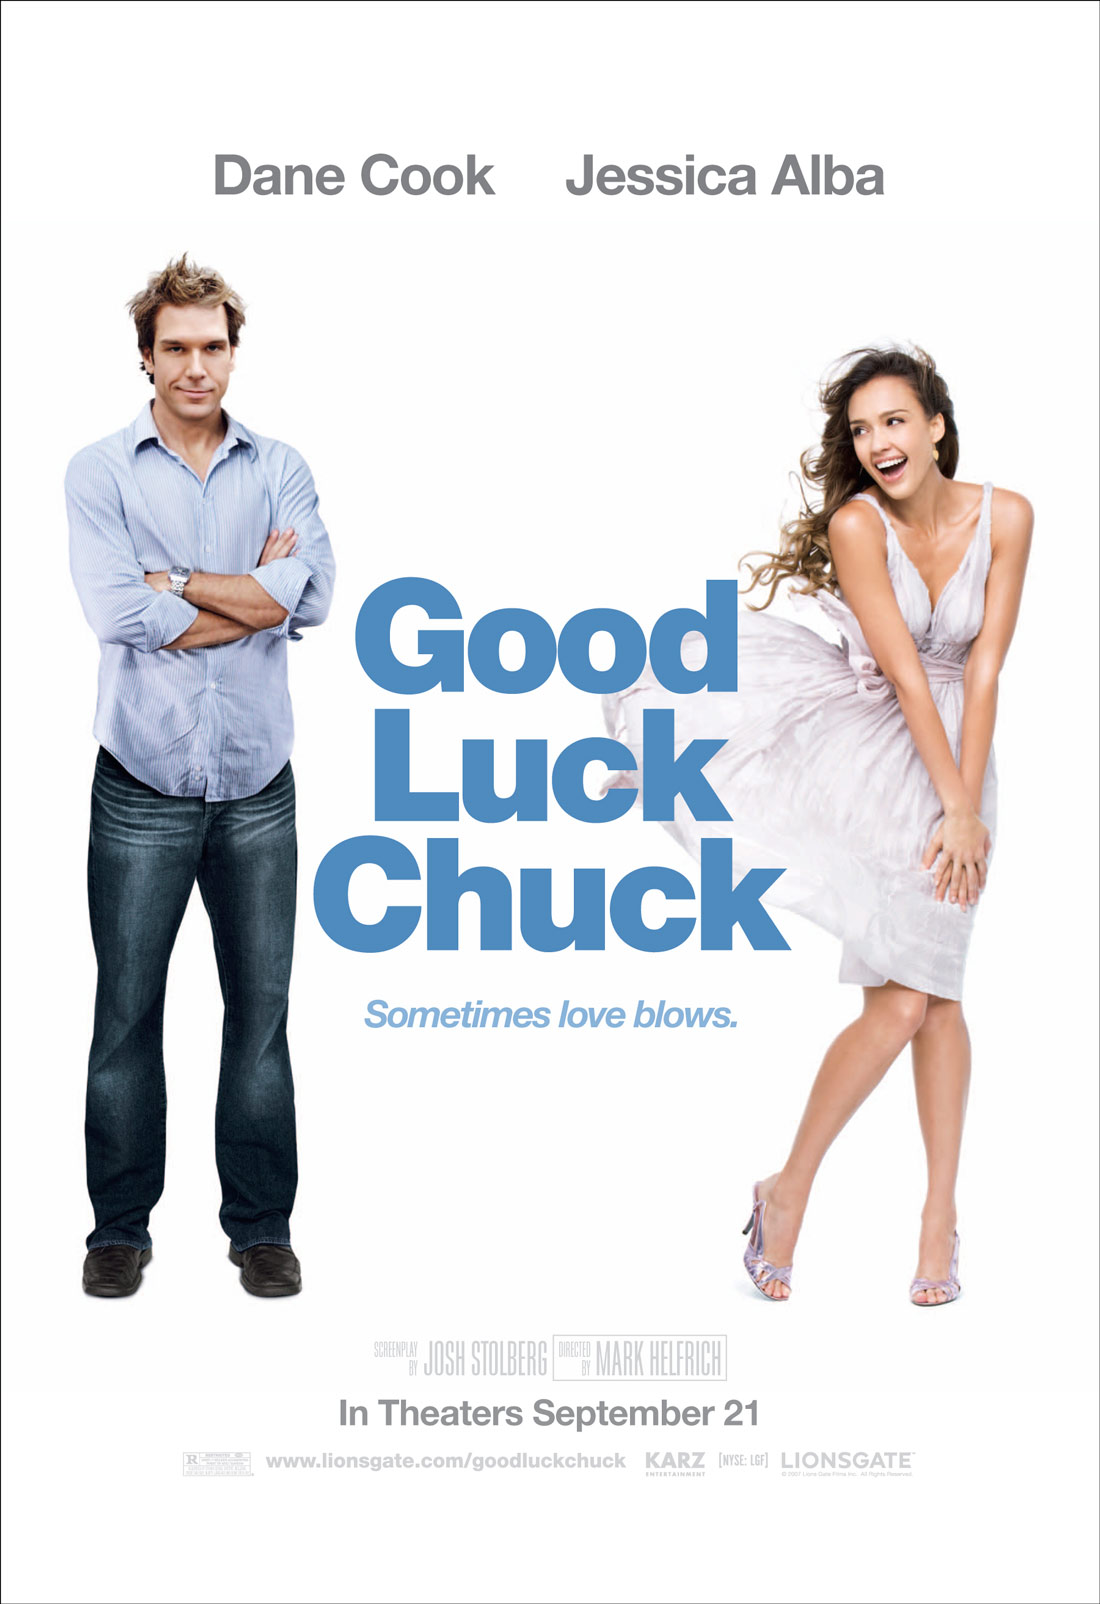 Удачи, Чак! / Good Luck Chuck [UNRATED] (2007) BDRip + DVD9 + BDRip 720p + BDRip 1080p